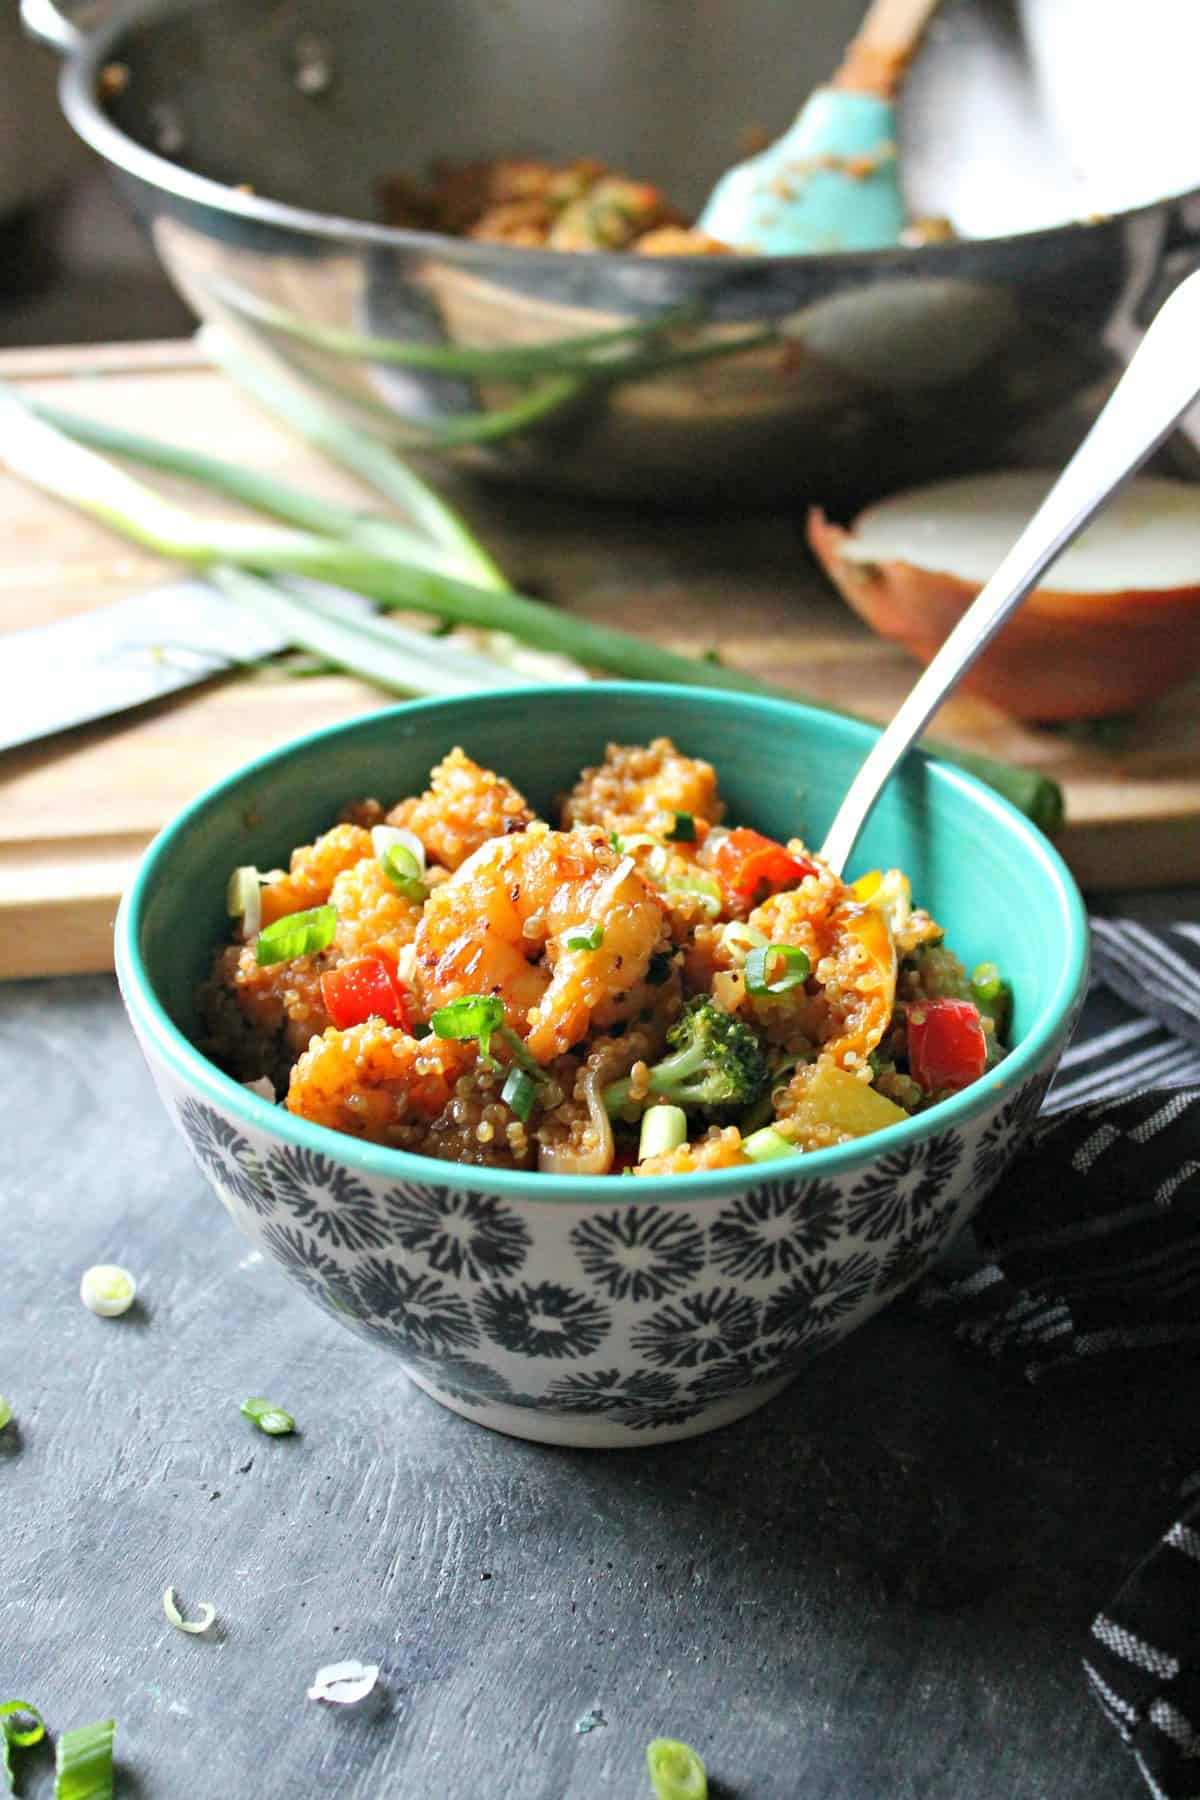 Pineapple shrimp on a bed of quinoa and sweet bell peppers